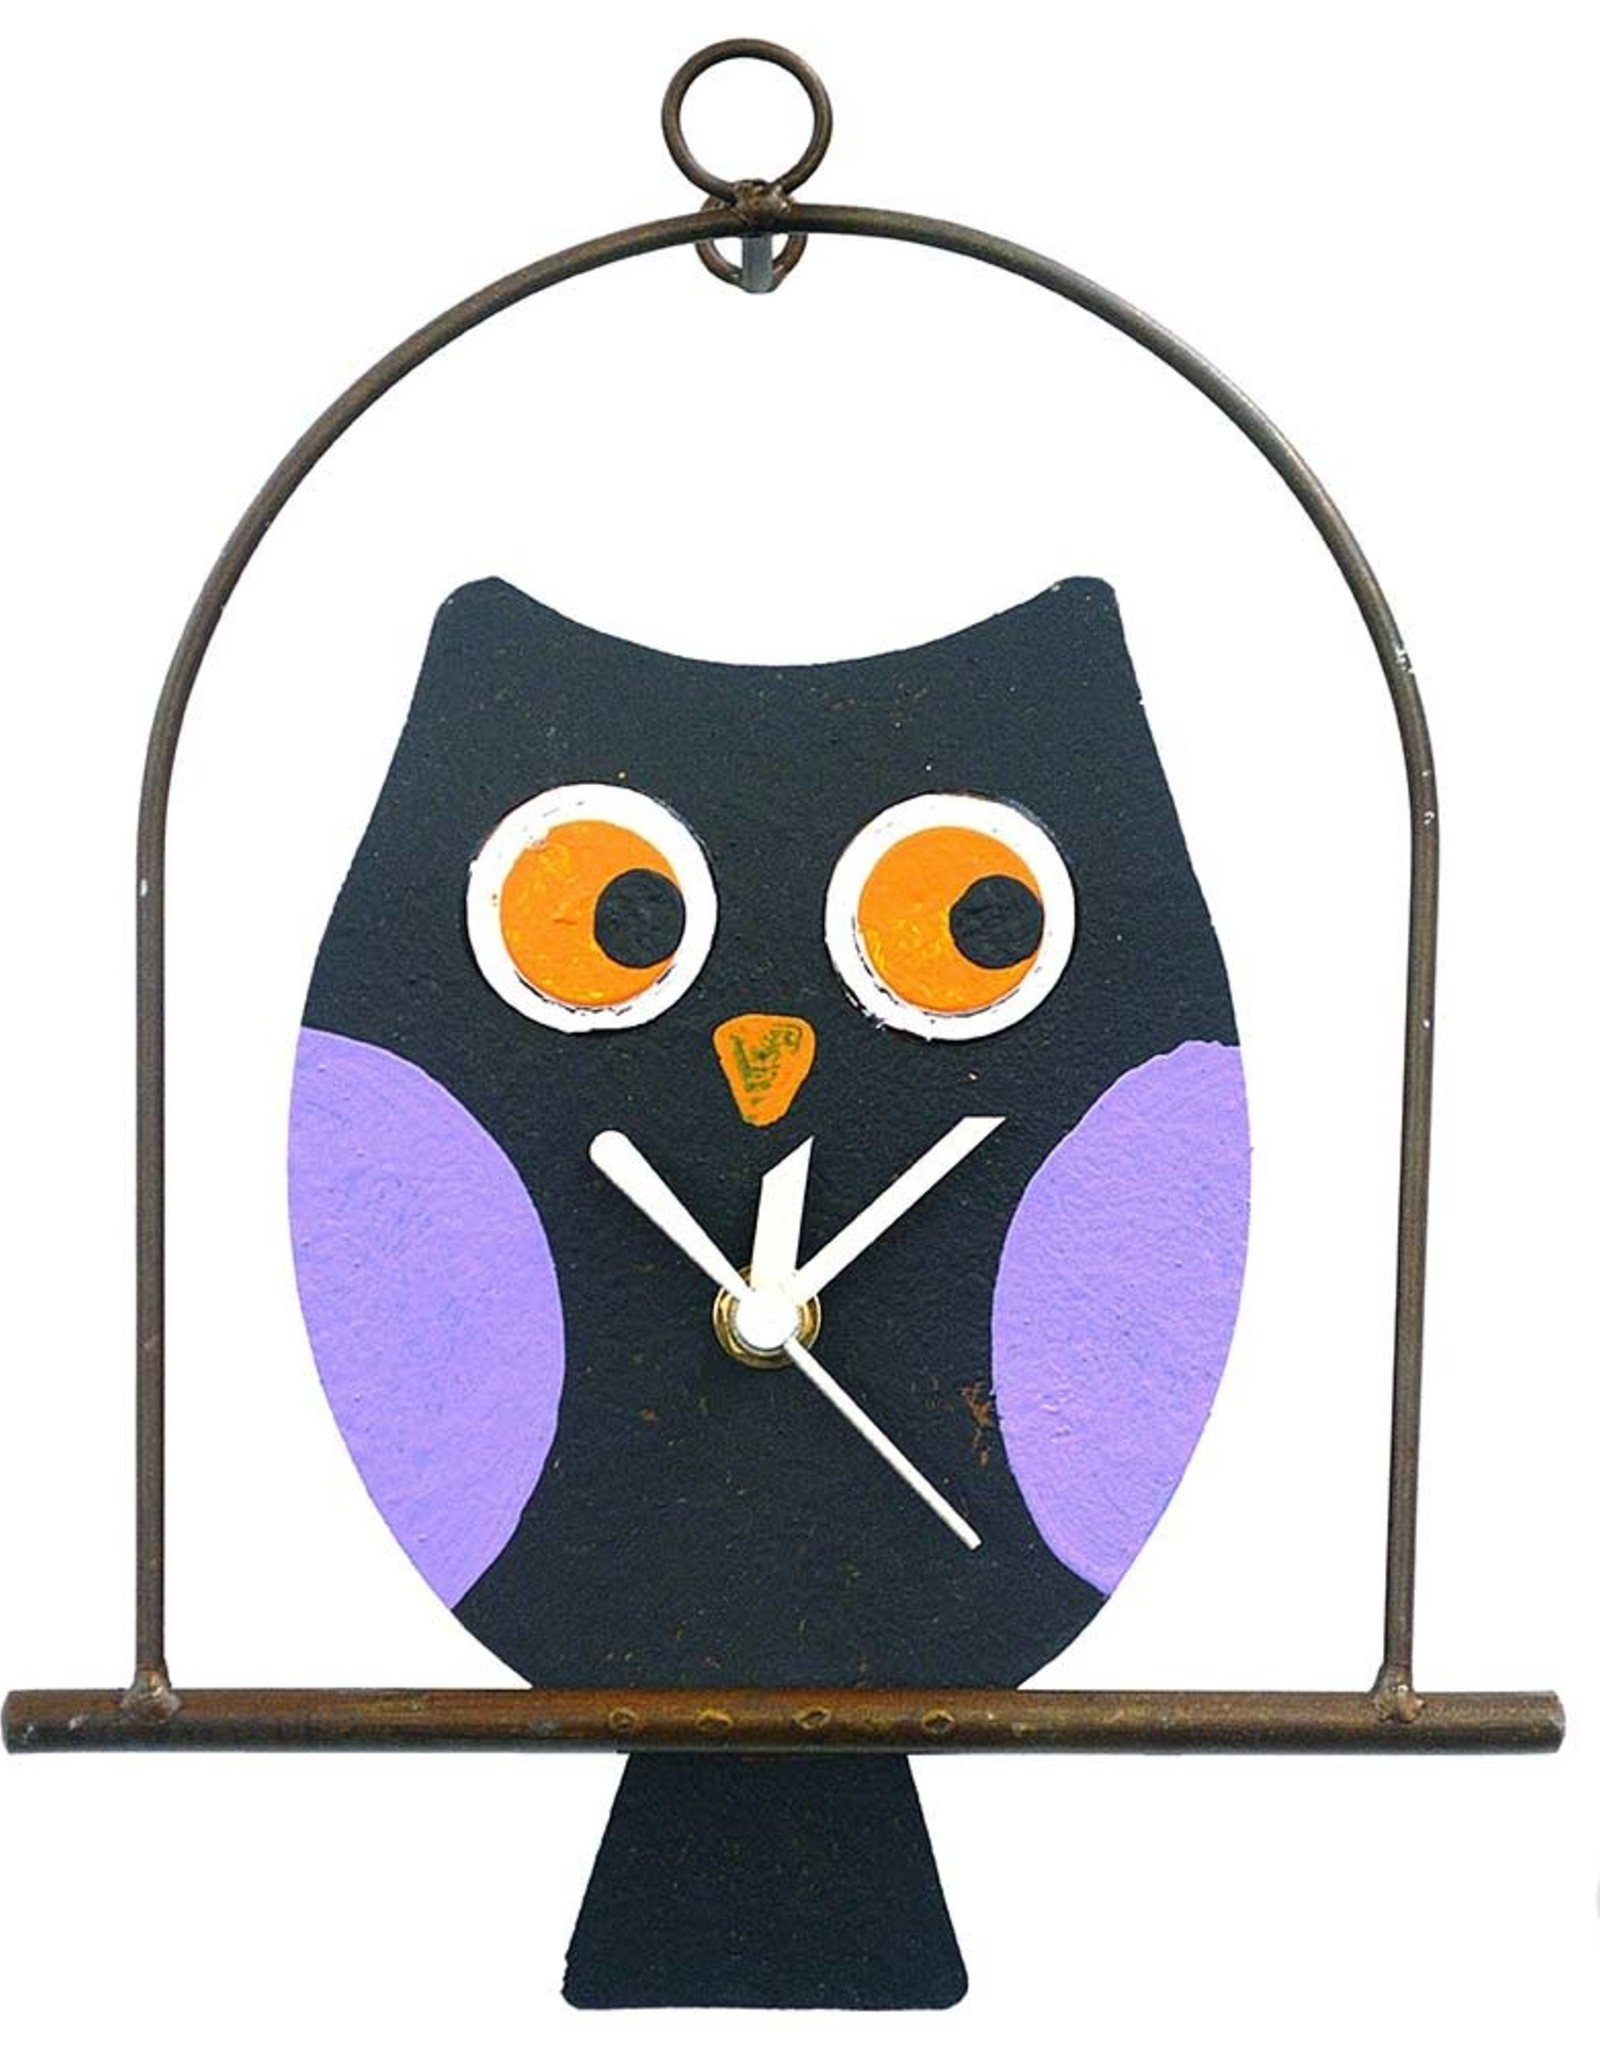 Colombia, Silly Clocks Black owl in a cage